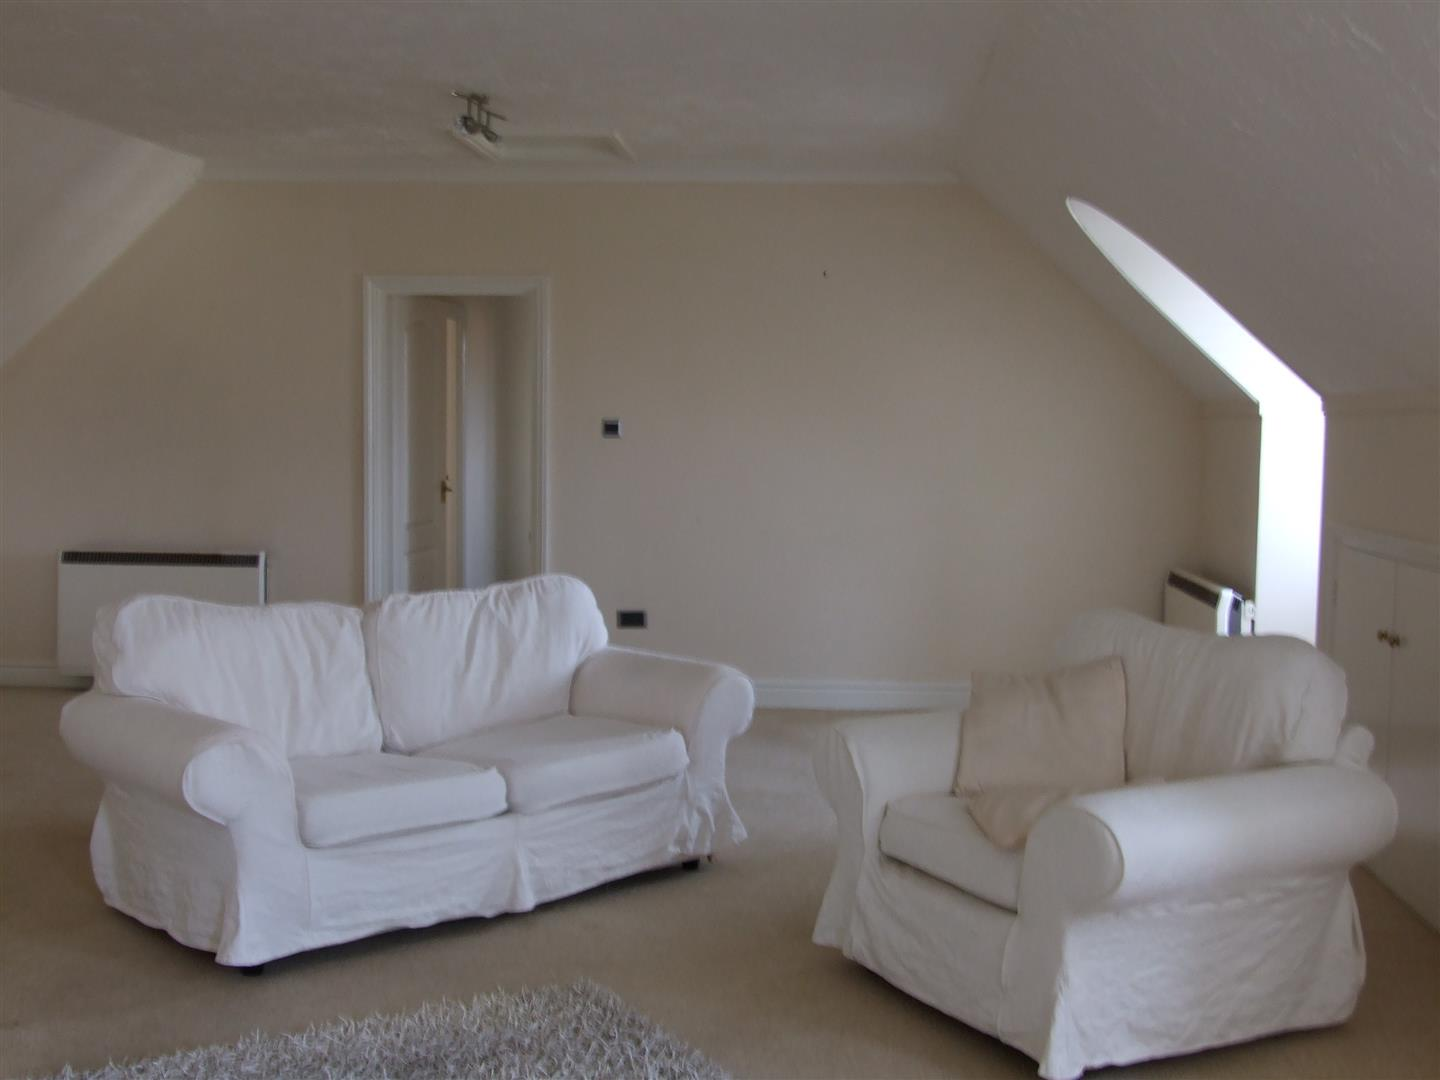 2 bed flat to rent in Long Sutton Spalding, PE12 9RL  - Property Image 3